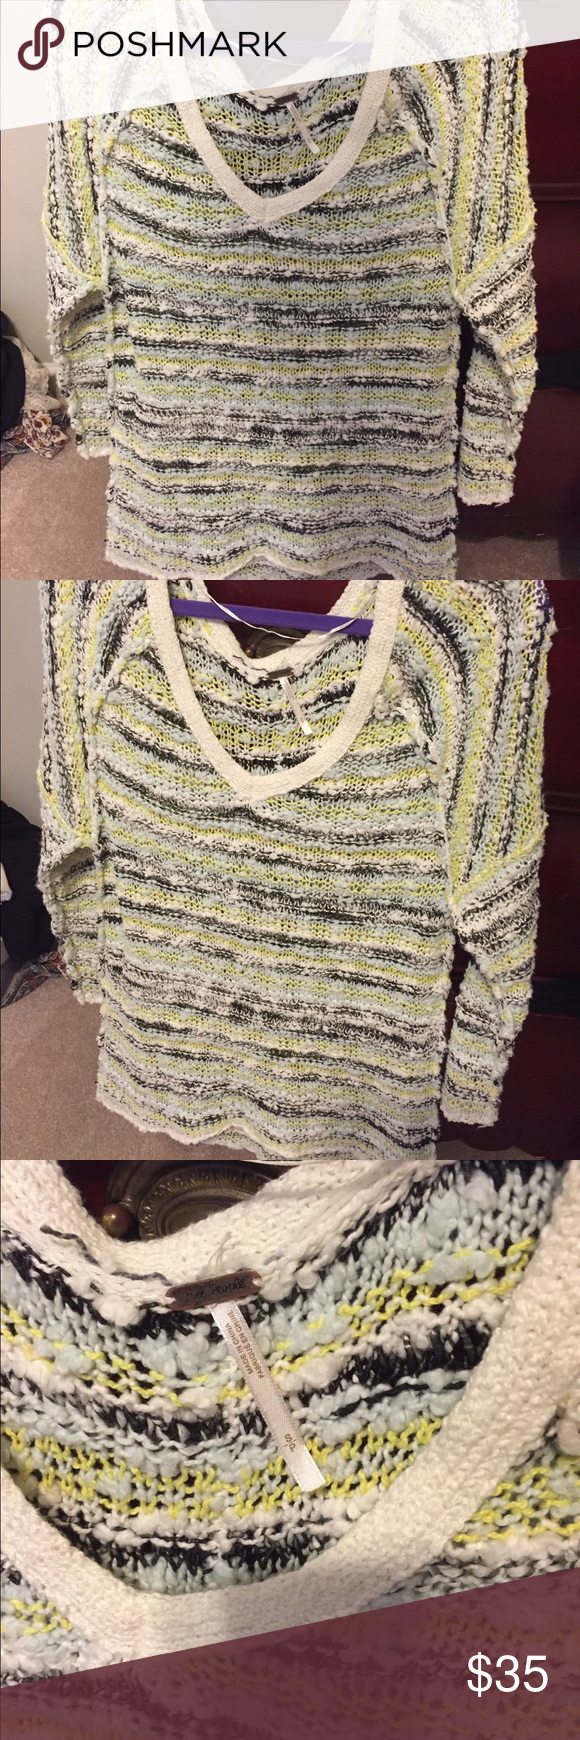 Free people knit sweater Probably the most comfortable thing I've worn. stretchy and soft and cute colors. Great condition Free People Tops